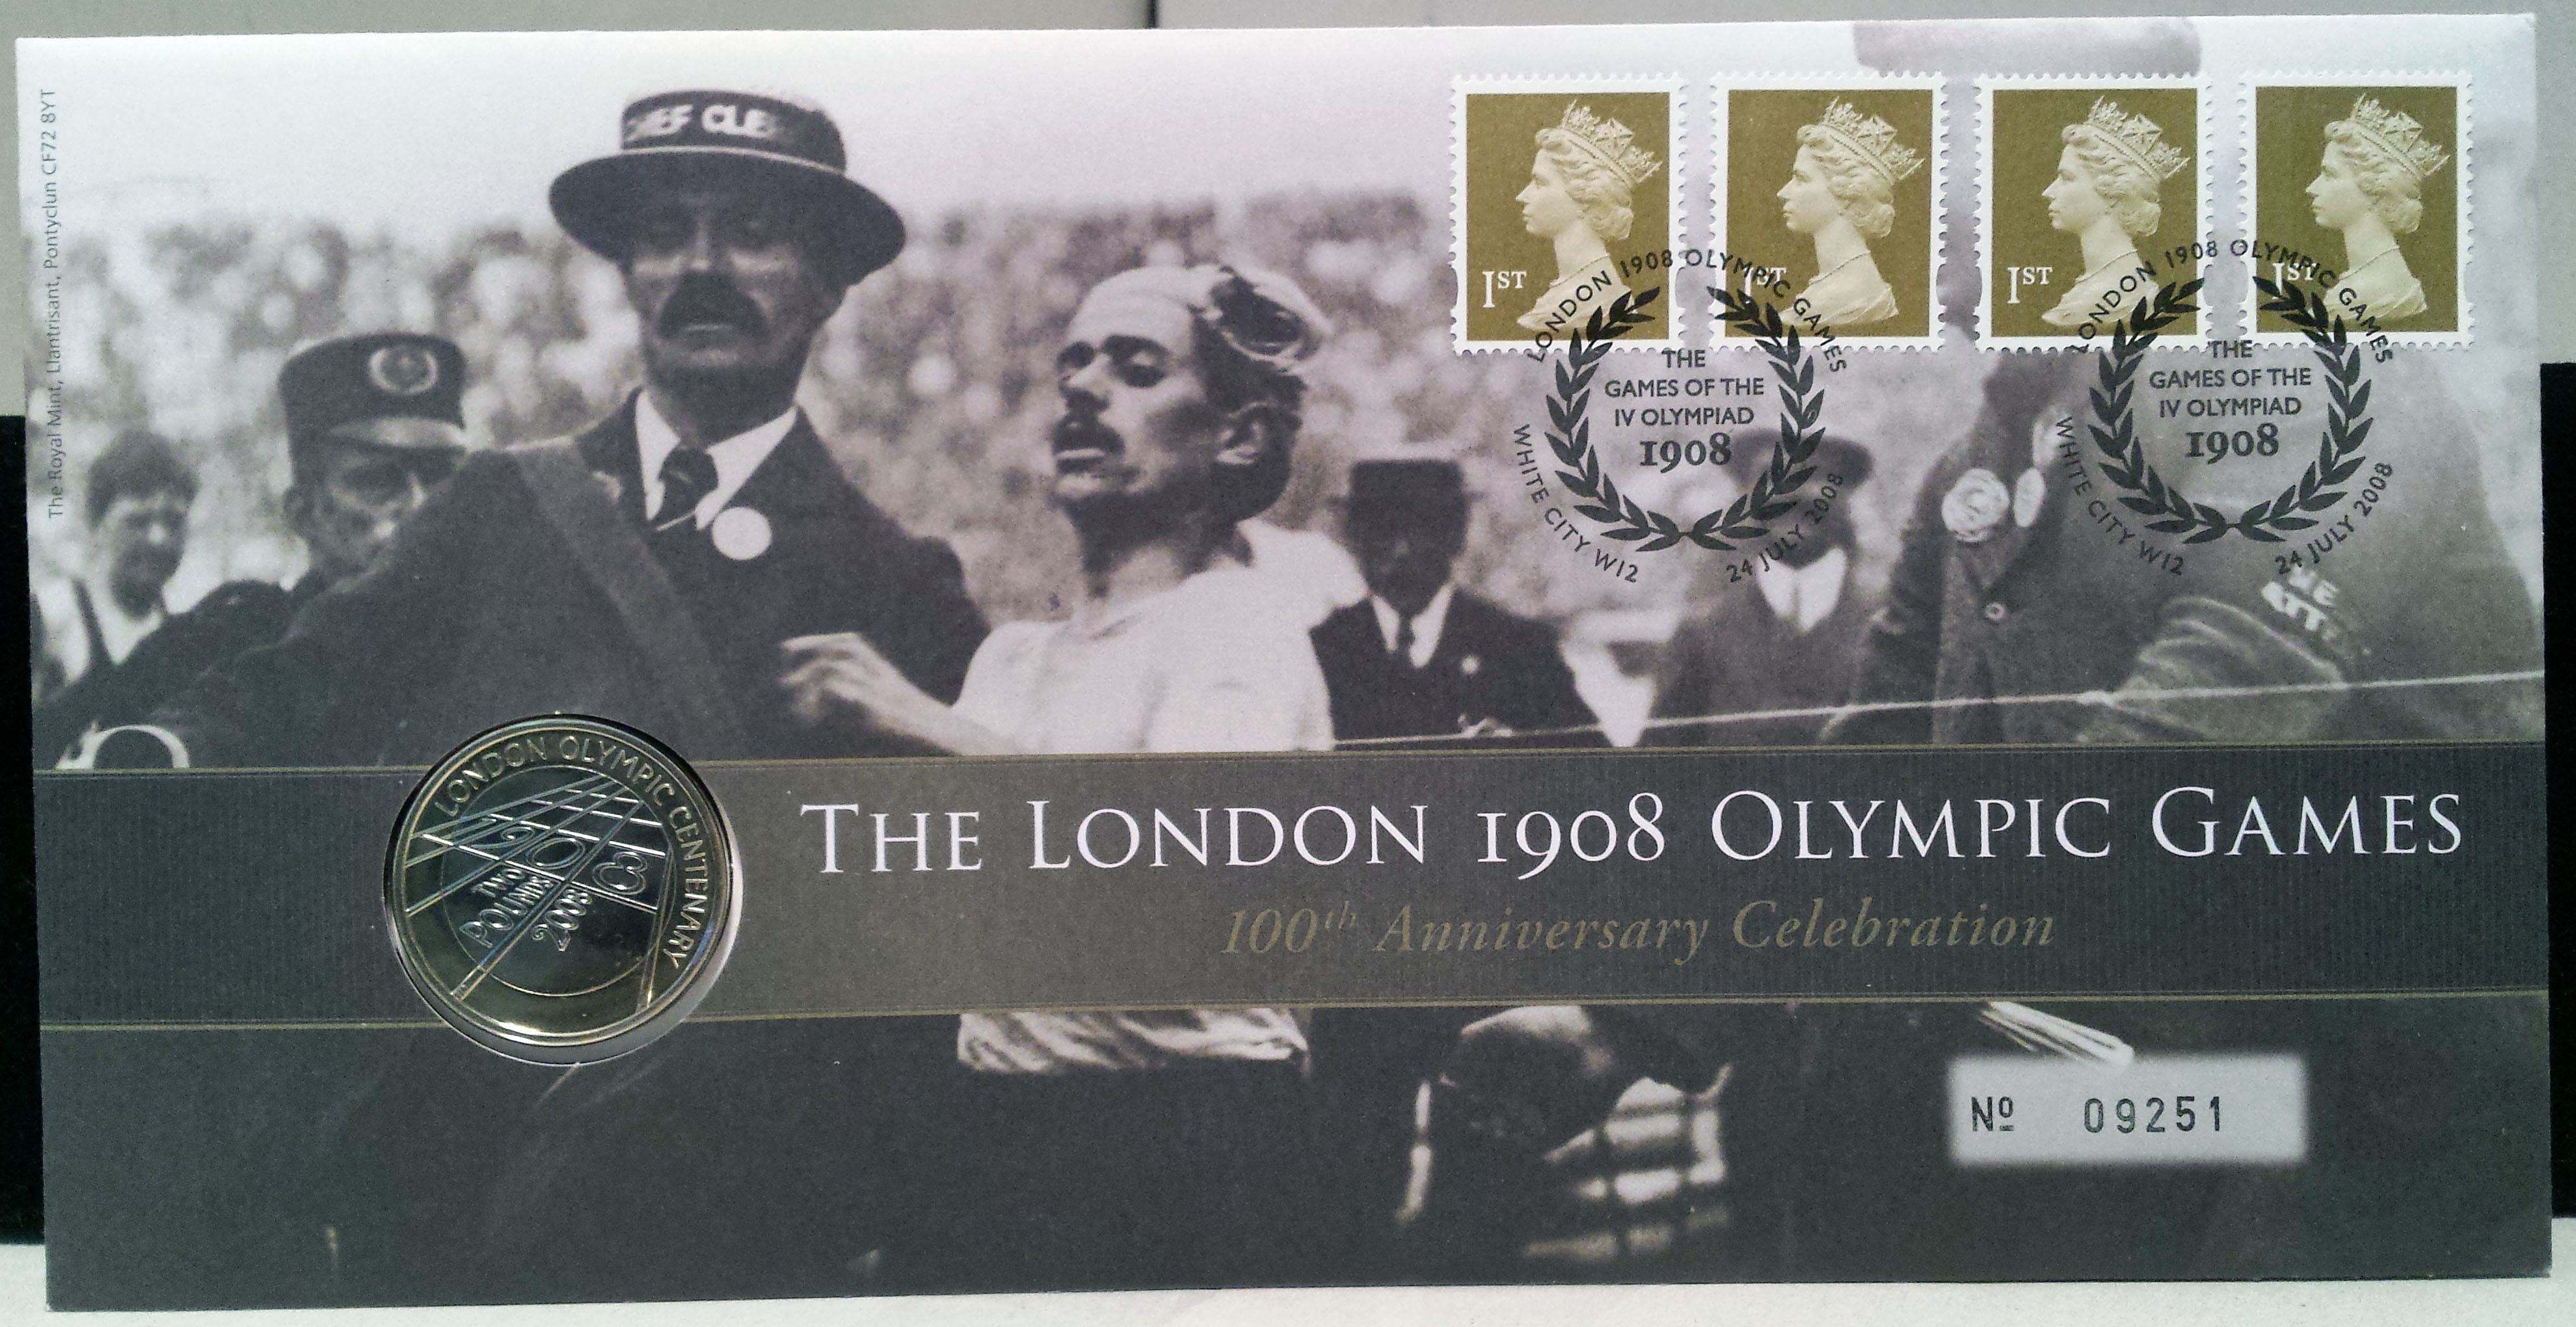 LONDON 1908 OLYMPICS 100TH ANIV 2008 ROYAL MINT COVER